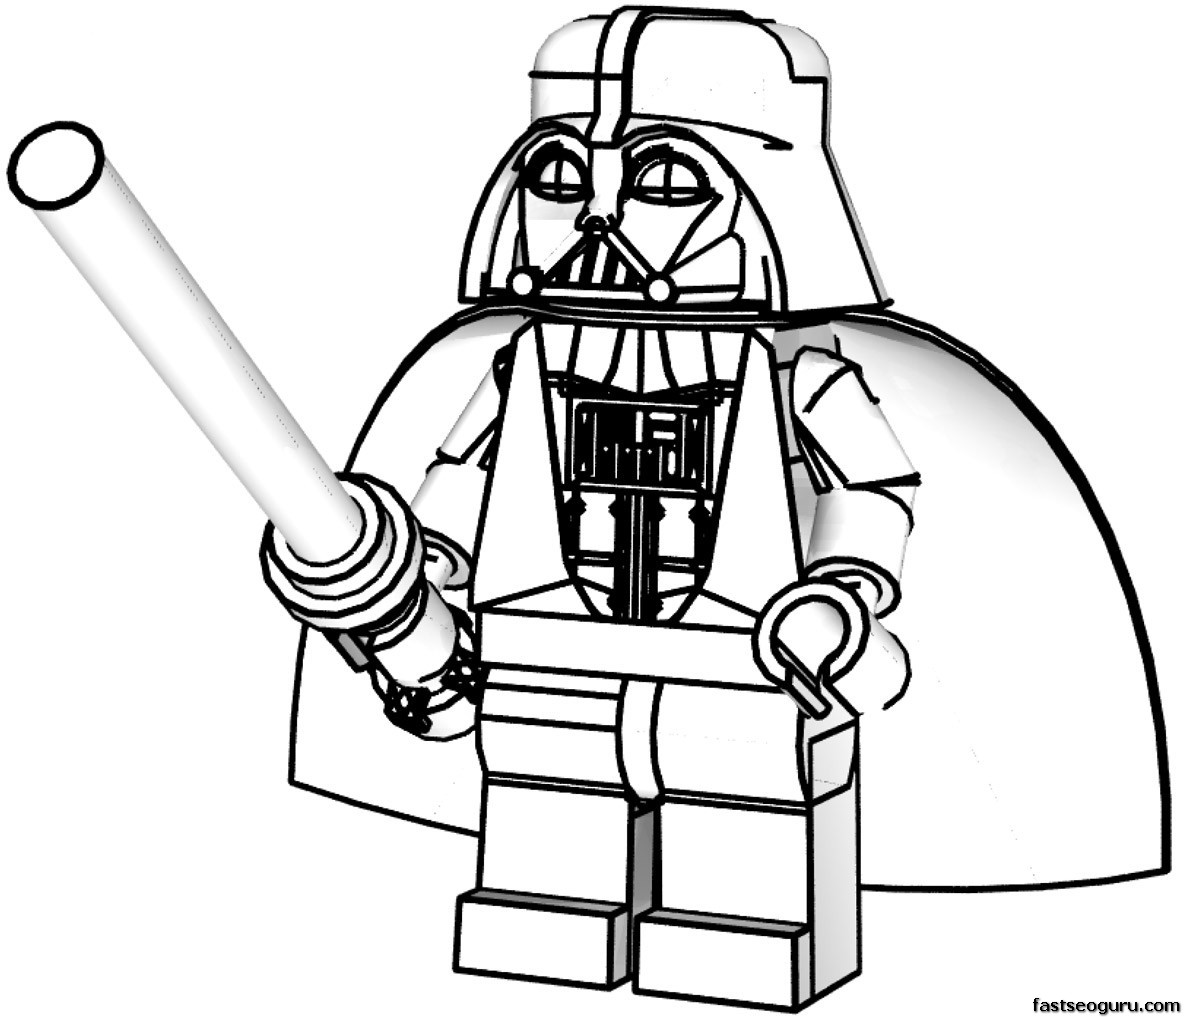 free lego star wars coloring pages lego star wars coloring pages best coloring pages for kids lego wars star free coloring pages